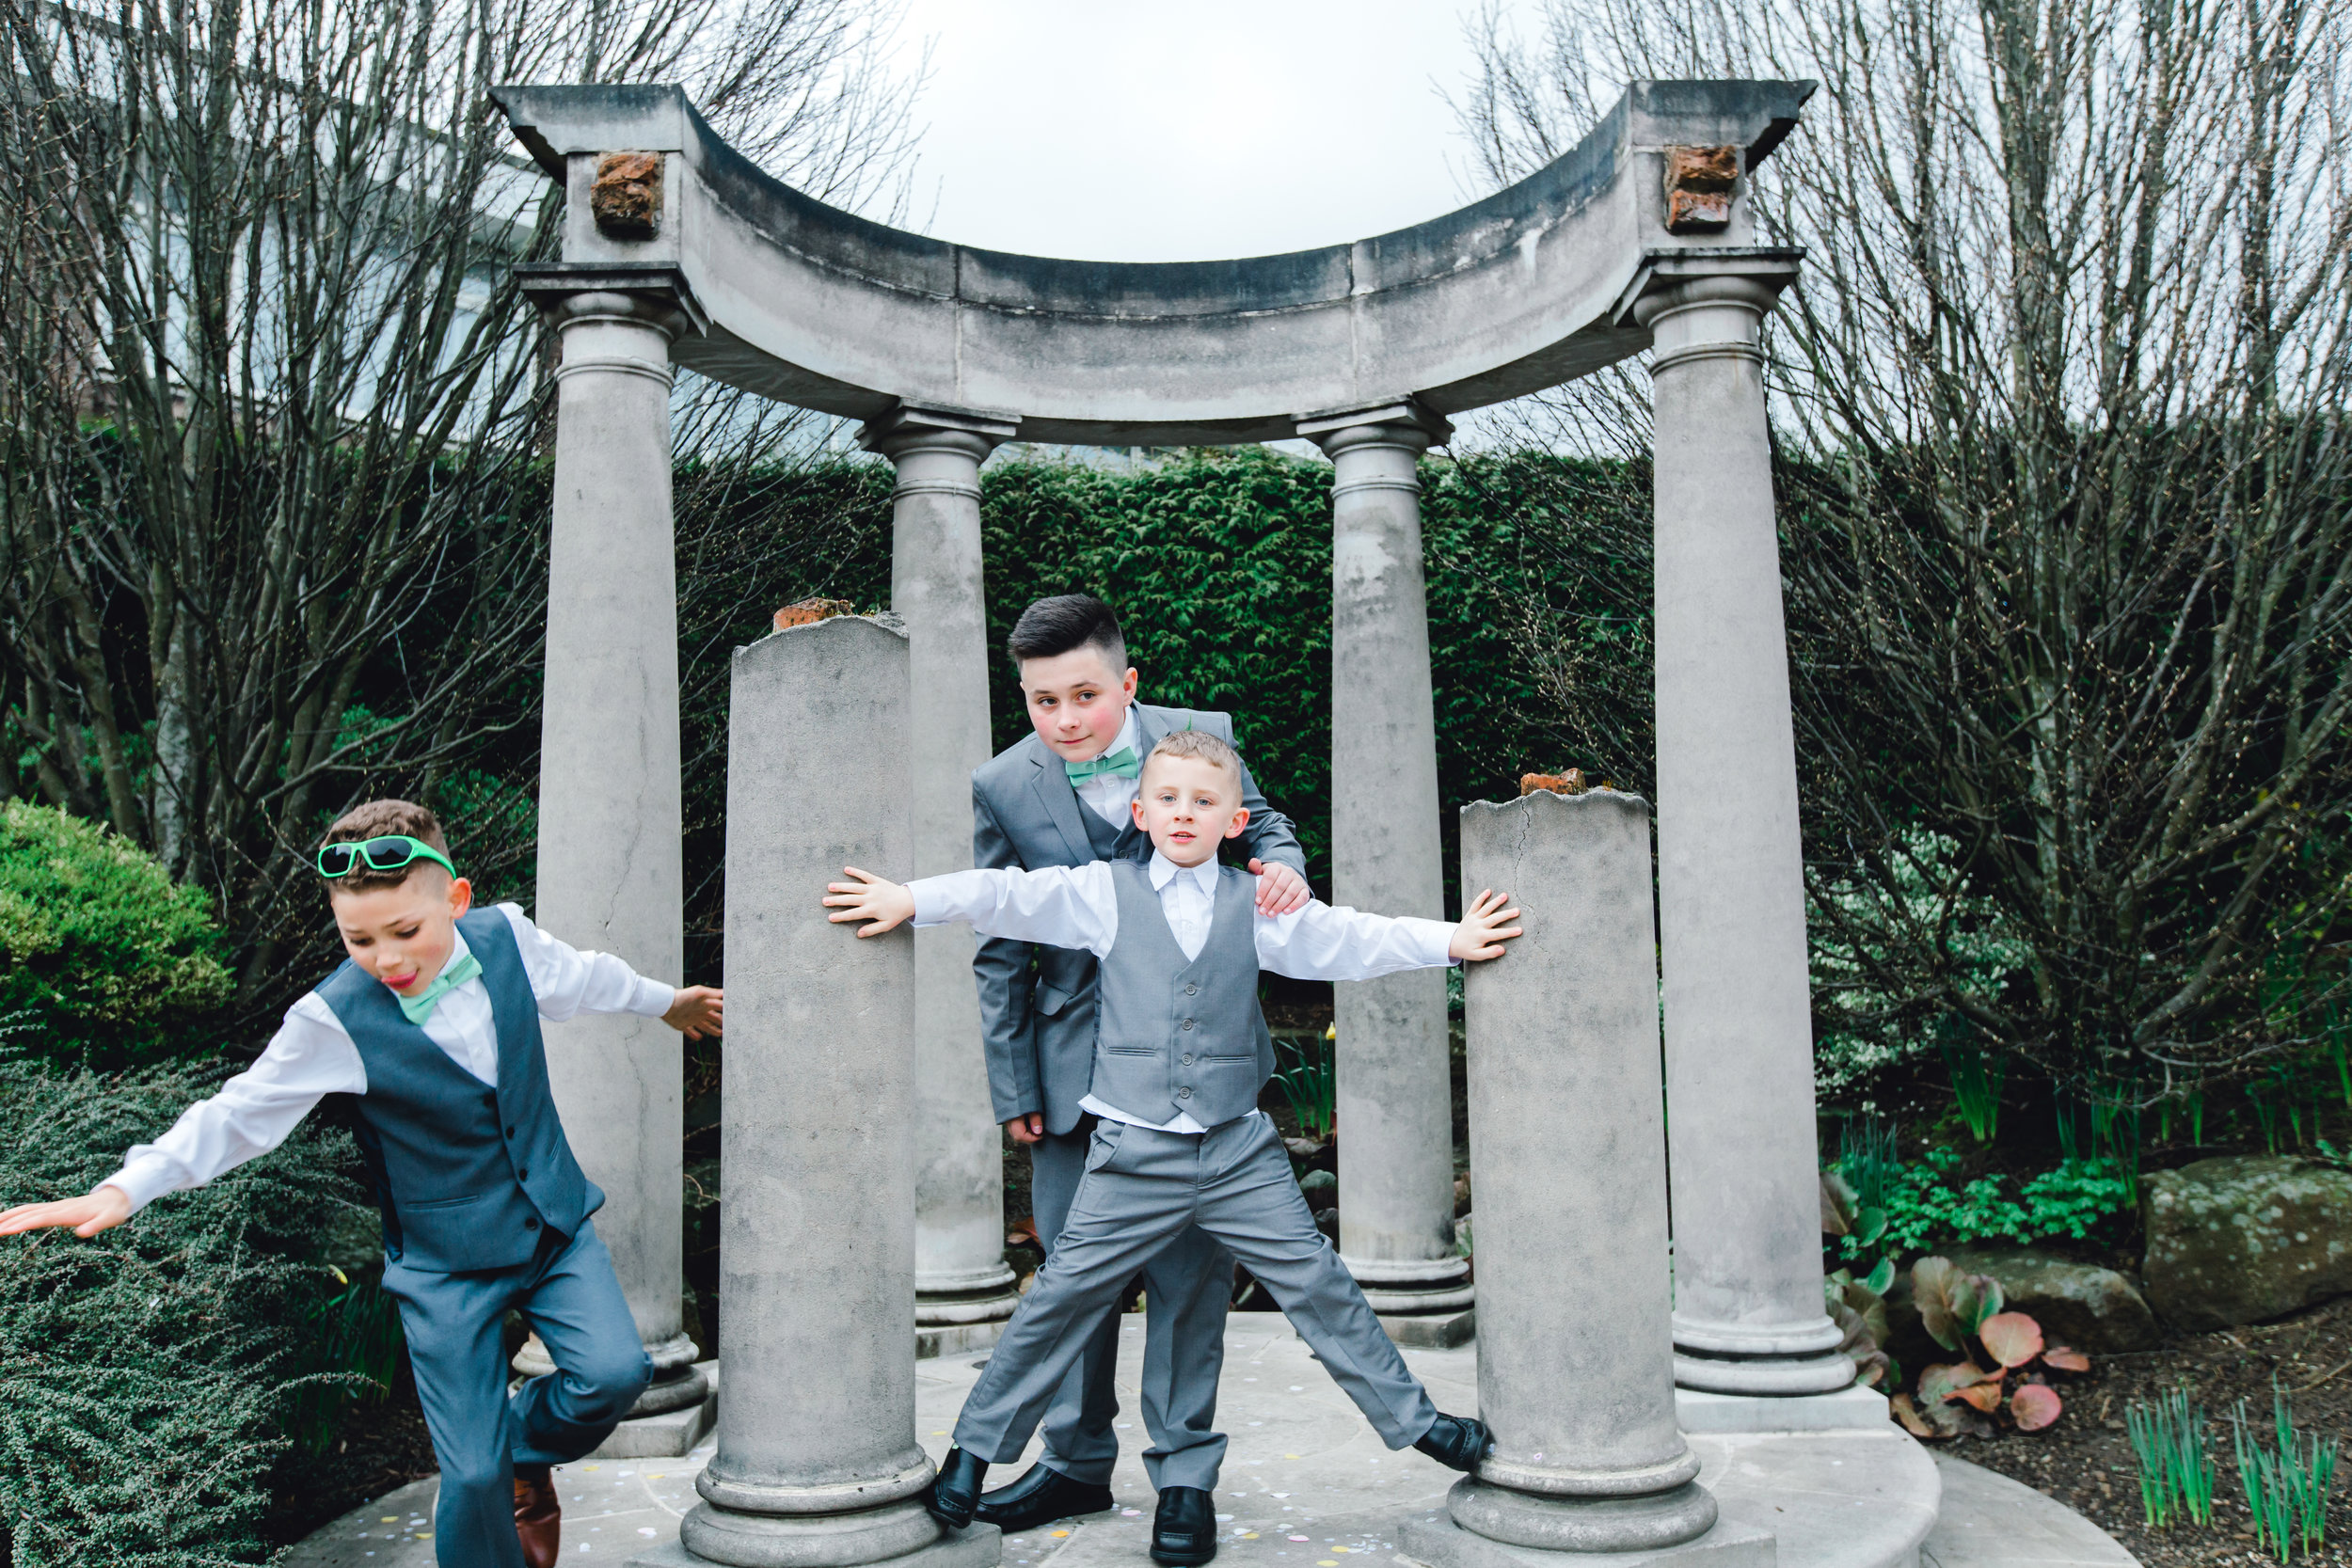 Funny kids at a wedding during the formal photos